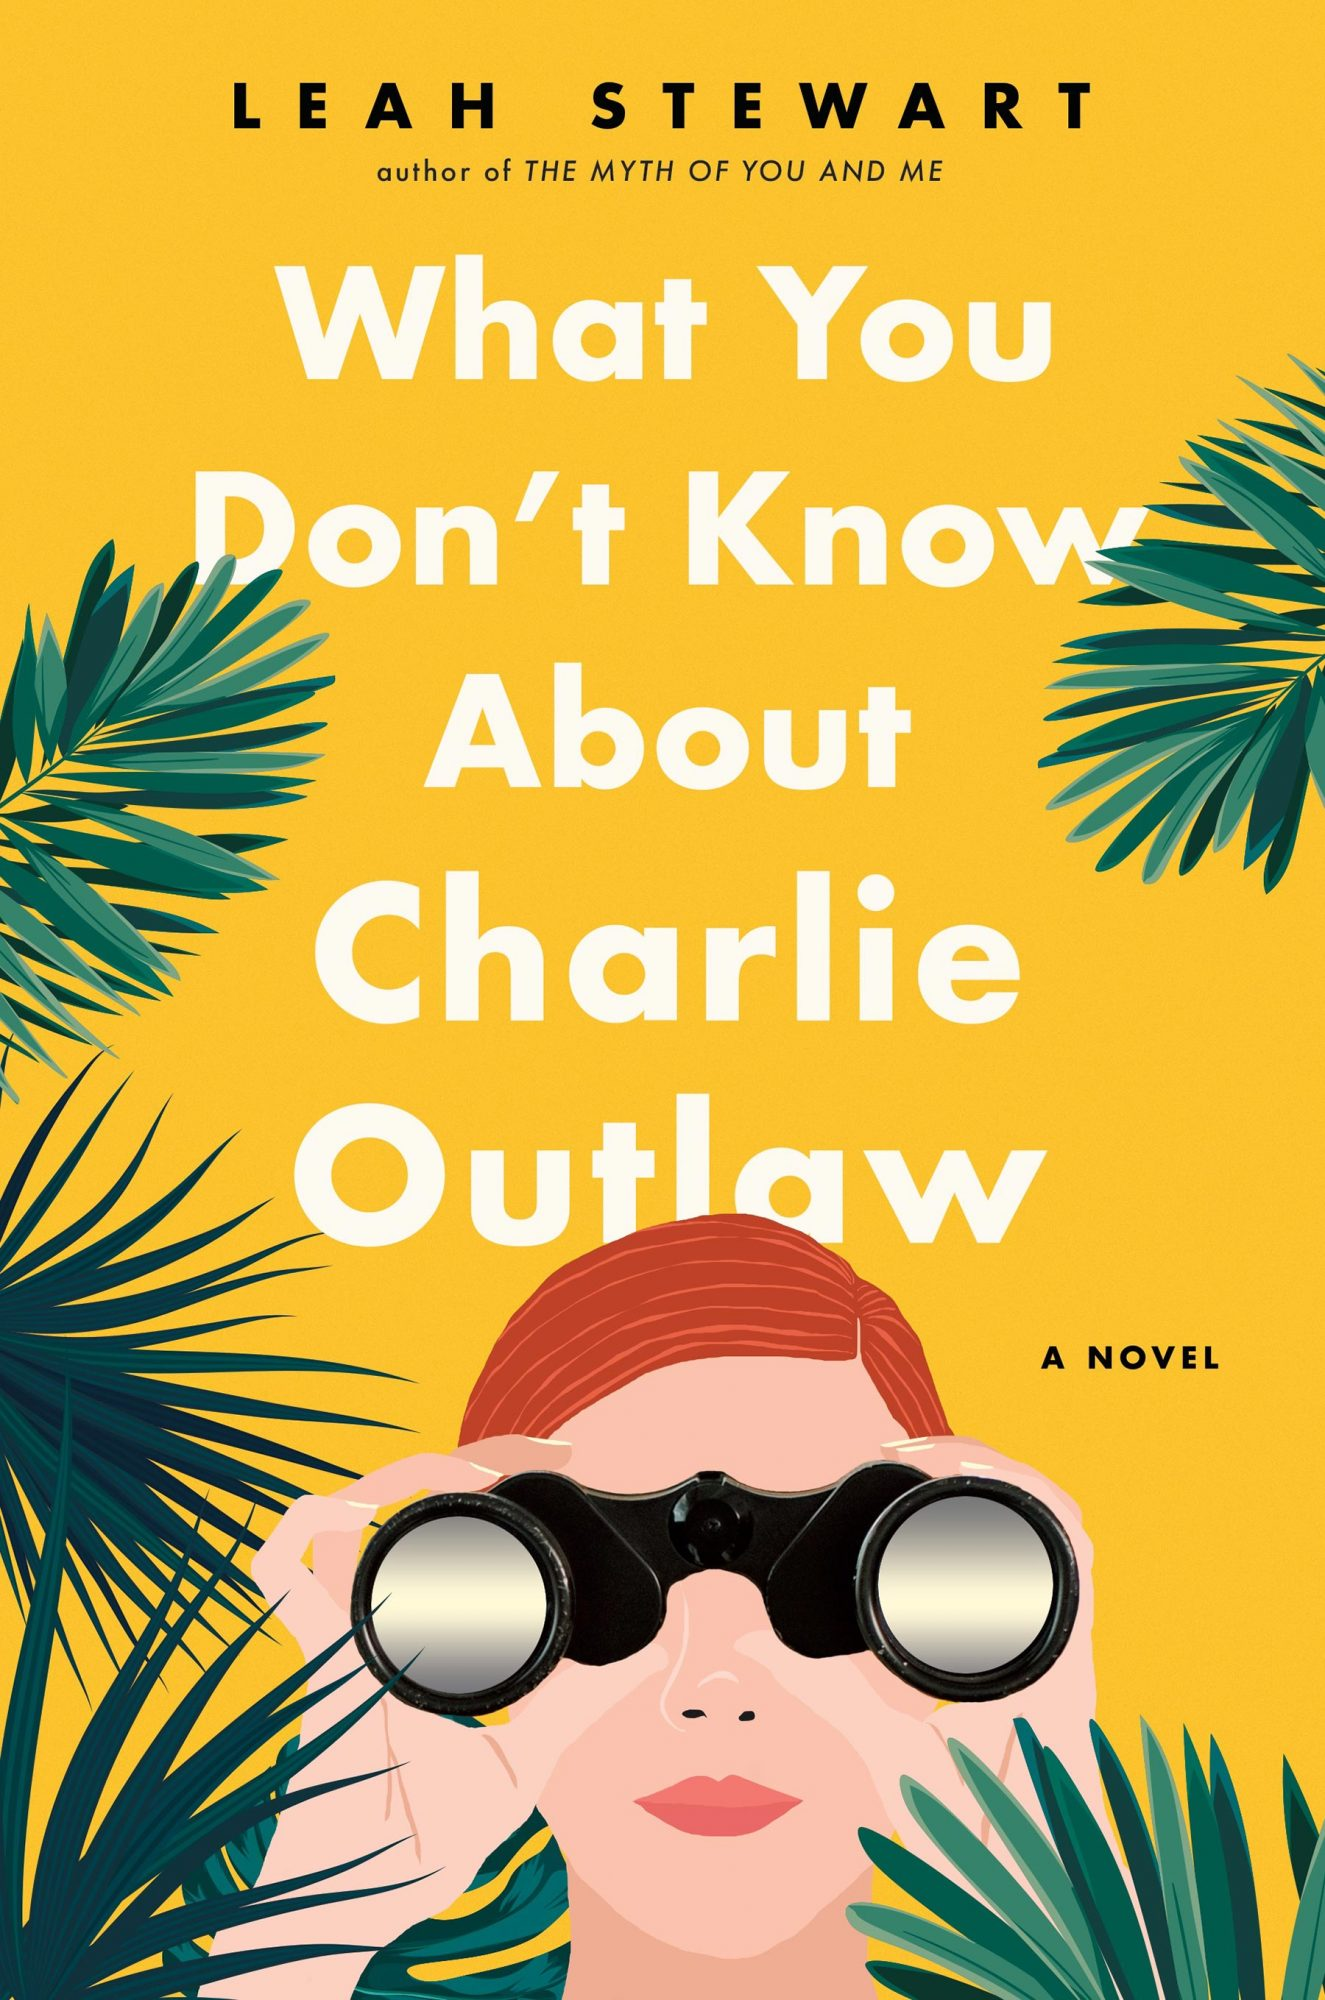 What You Don't Know About Charlie Outlaw (3/27/19) by Leah Stewart